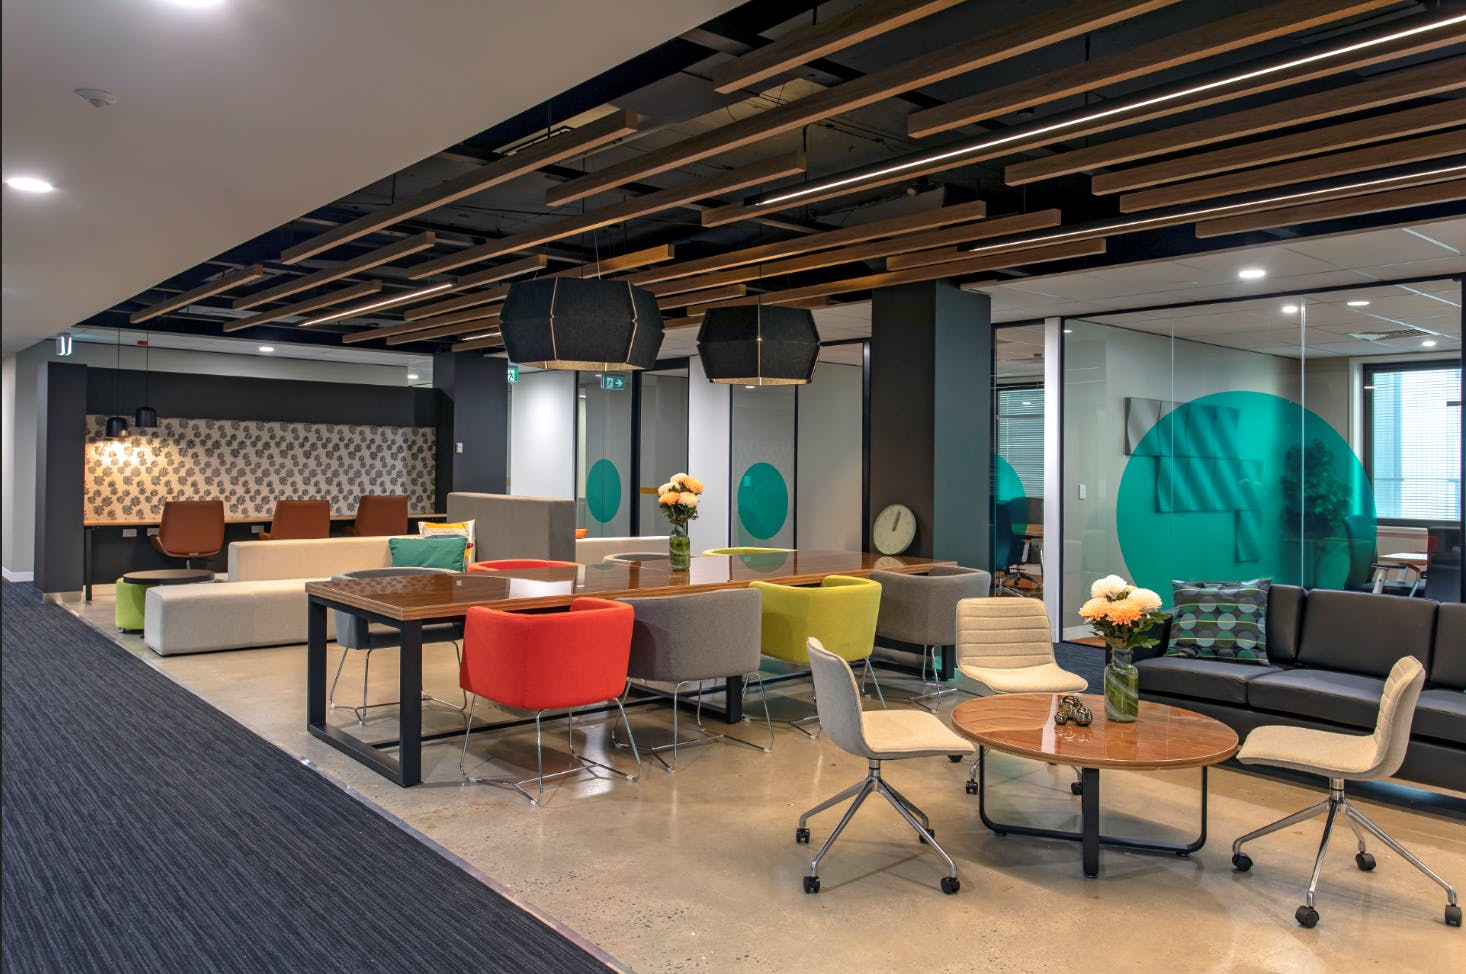 Suite 9, serviced office at Spot Co-Working, image 8